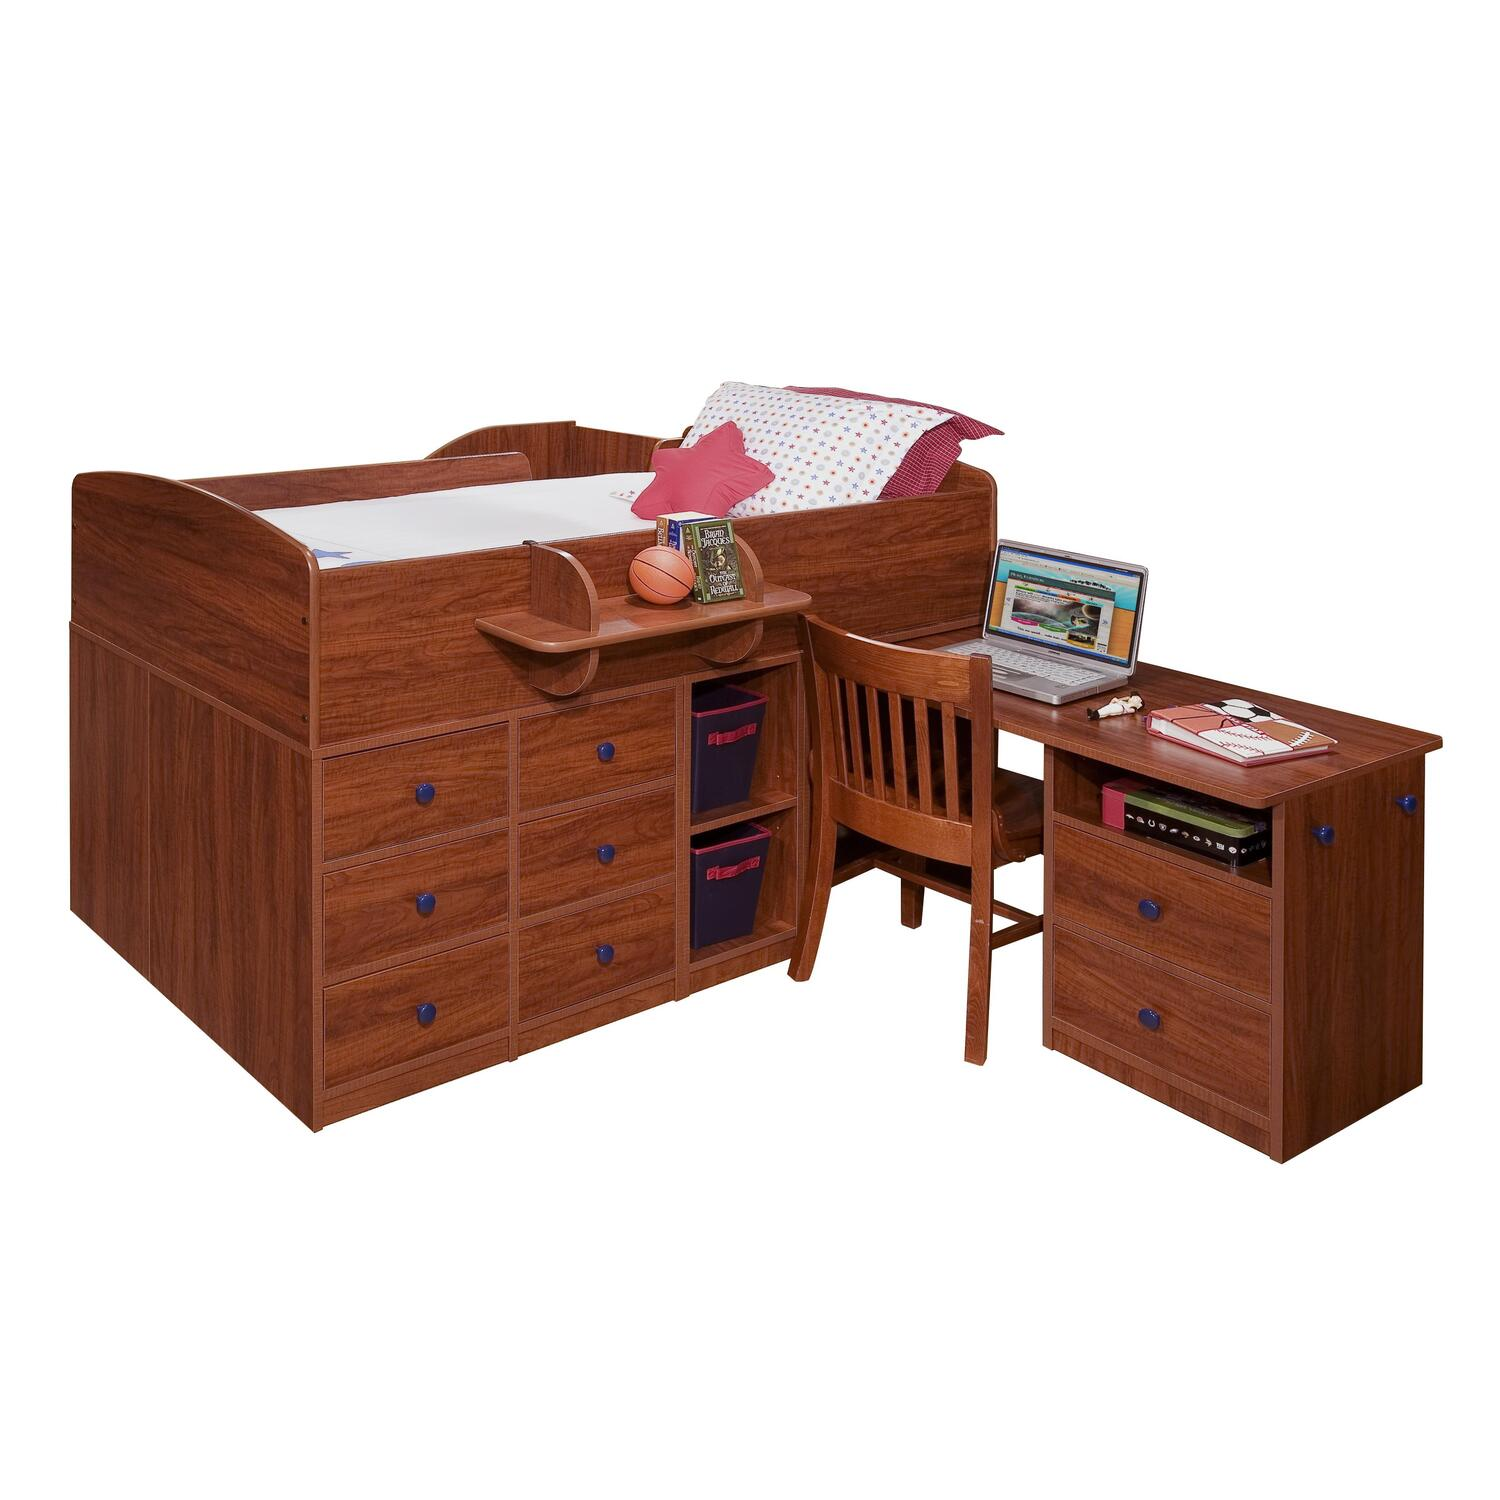 Berg Furniture Captain's Bed Twin with PullOut Desk Stairs on Back Natural Maple Antique Bronze Chestnut